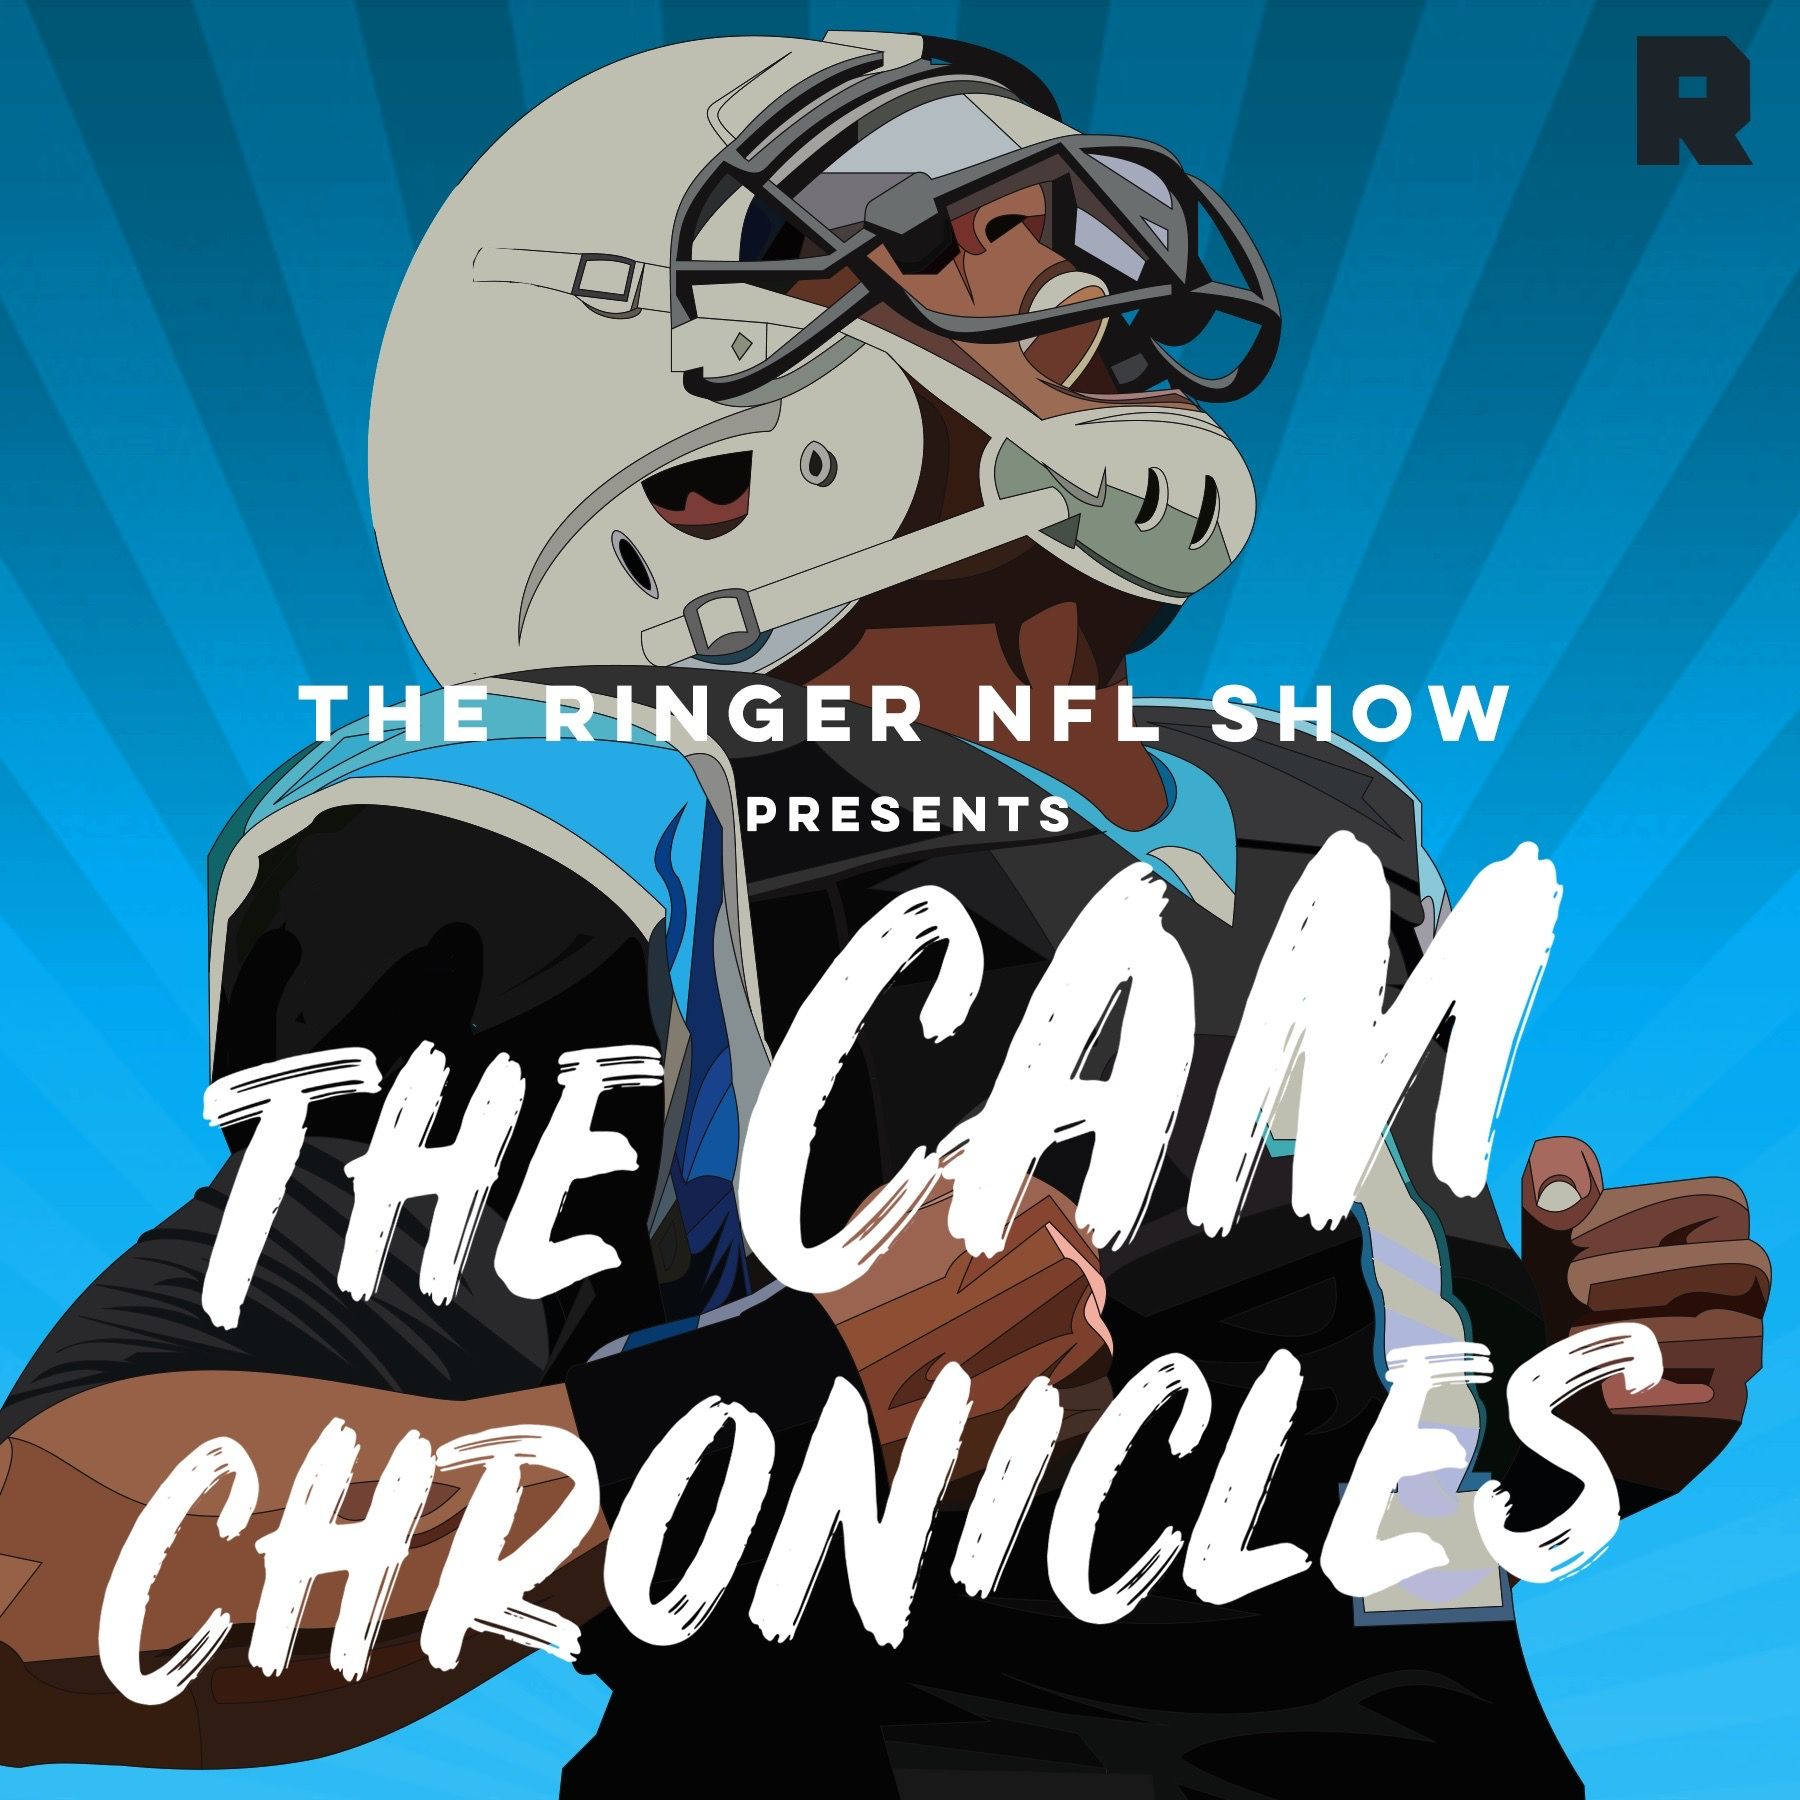 'The Ringer NFL Show' Presents 'The Cam Chronicles'